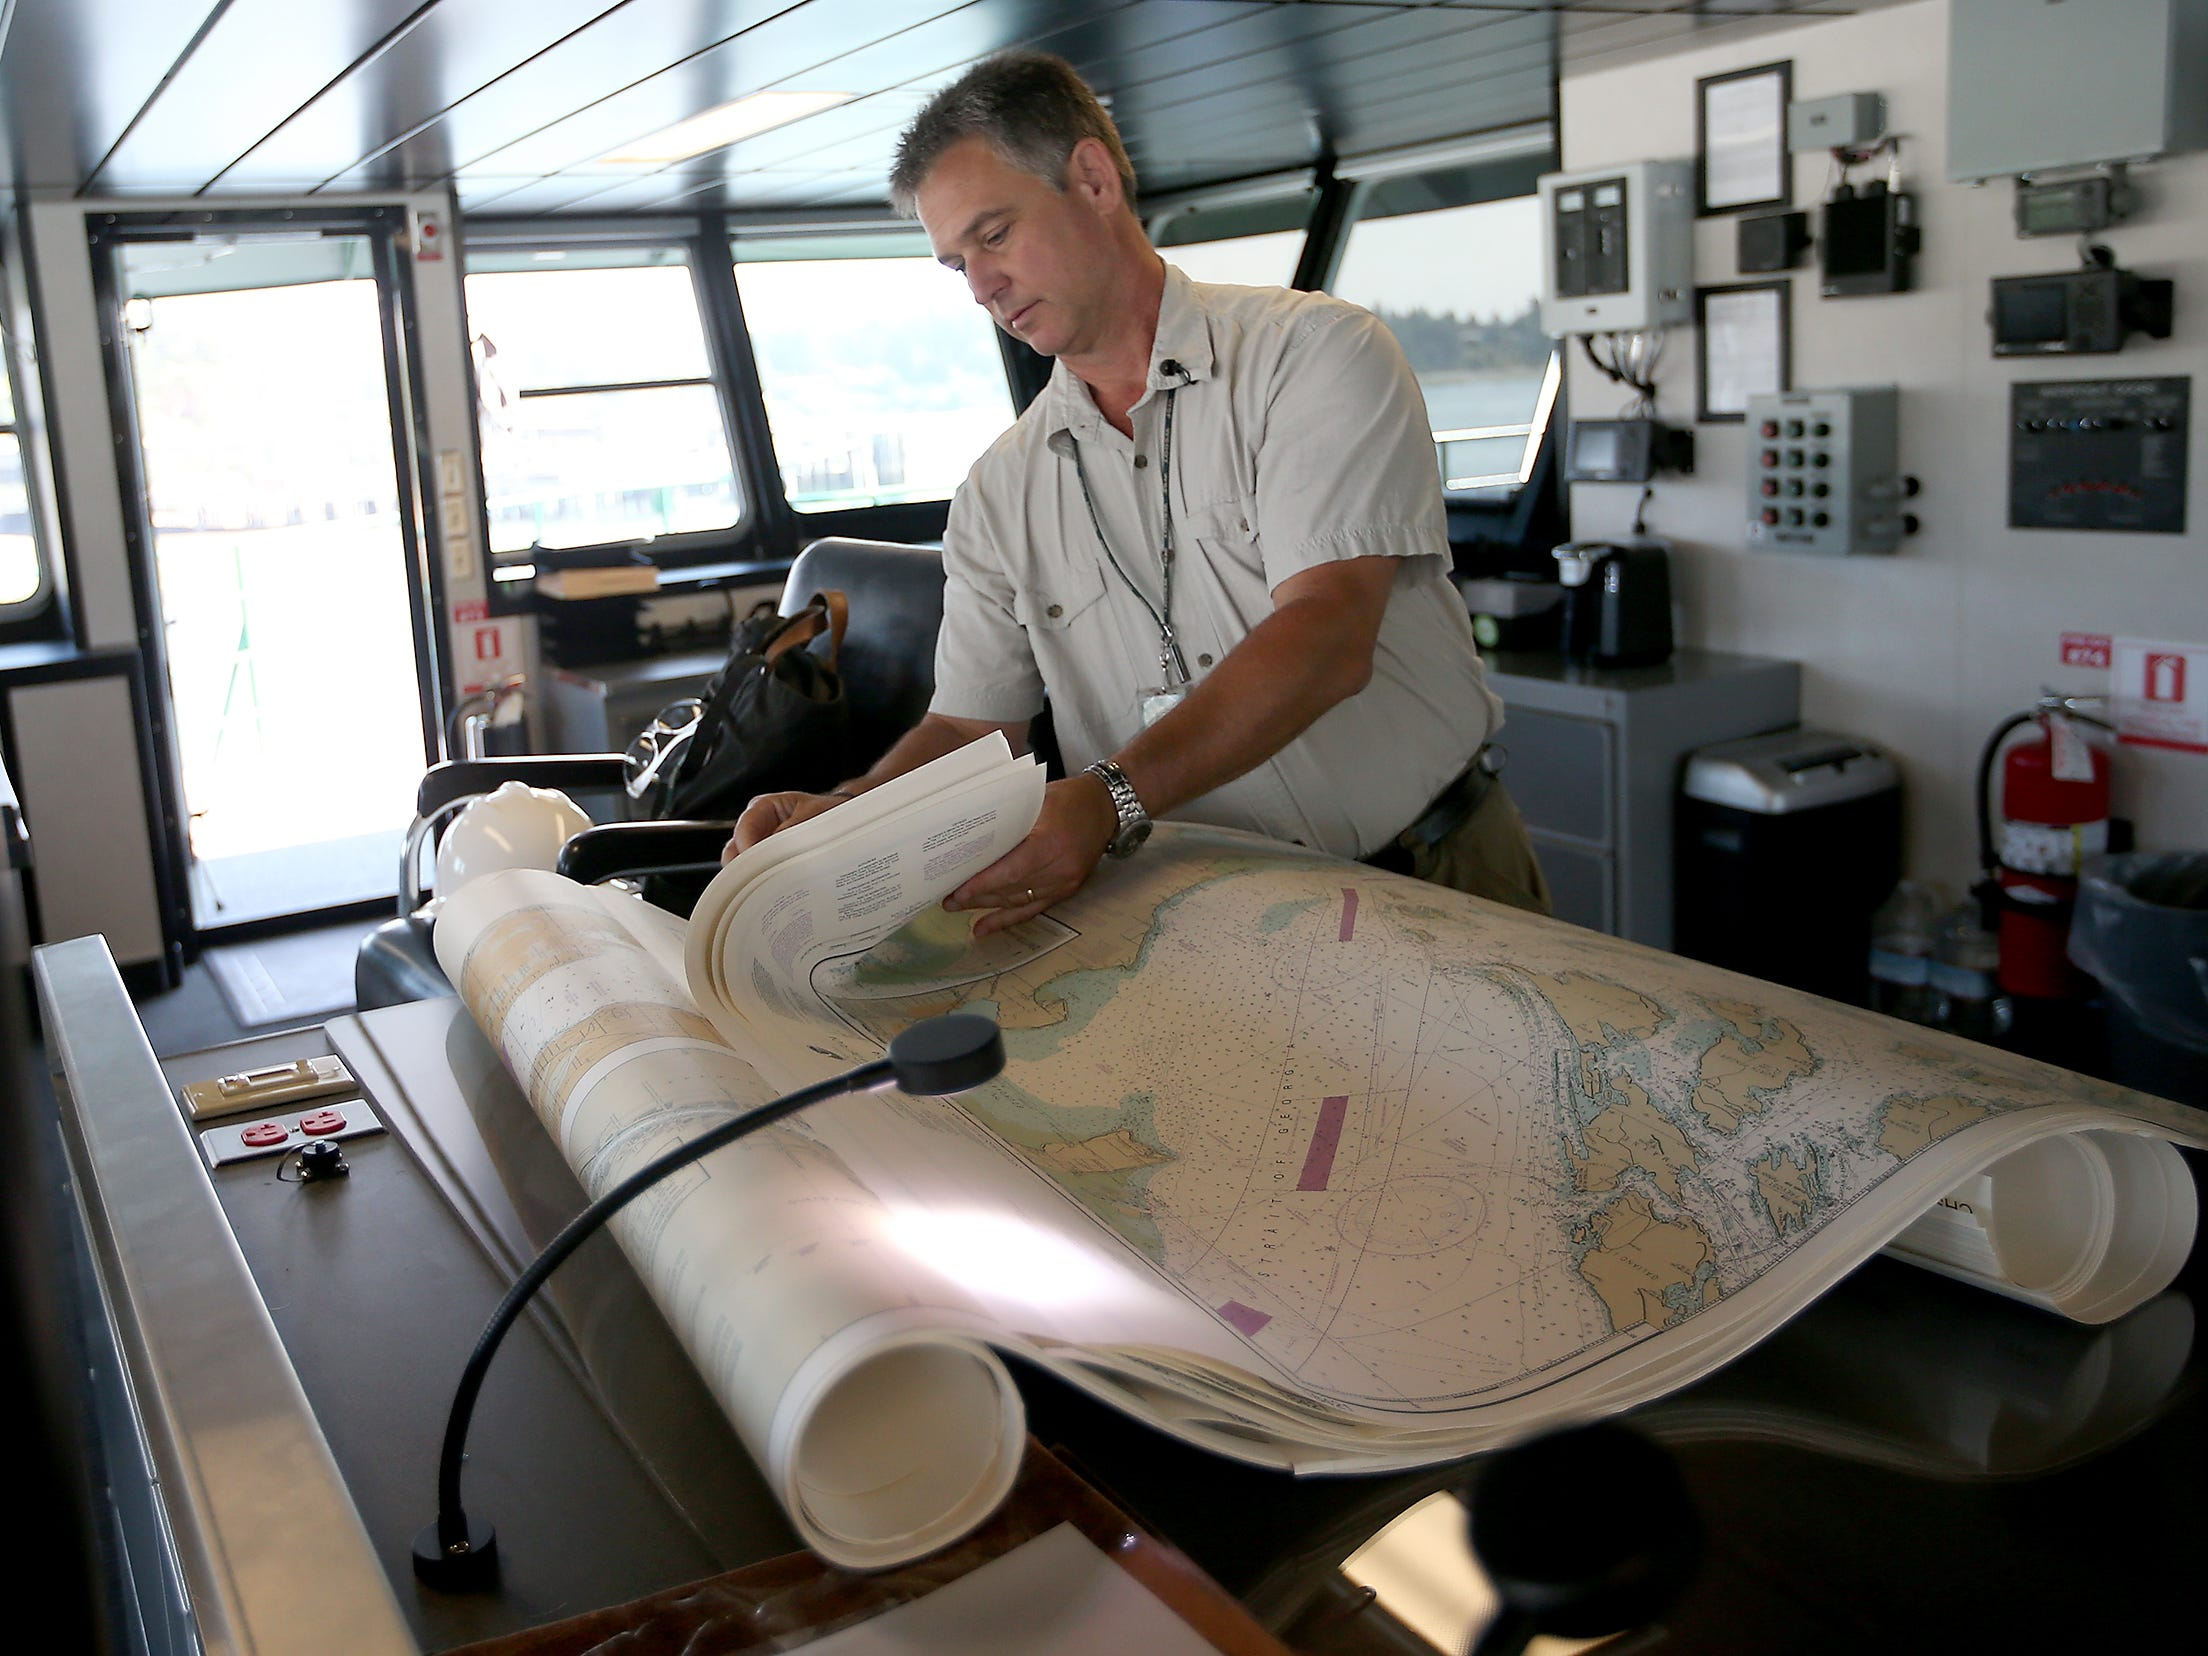 Capt. Greg Sugden sorts through navigational charts as he gets the bridge of the Washington State Ferry Suquamish ready for its upcoming sea trials, while docked at the Eagle Harbor Maintenance Facility on Thursday, August 9, 2018.